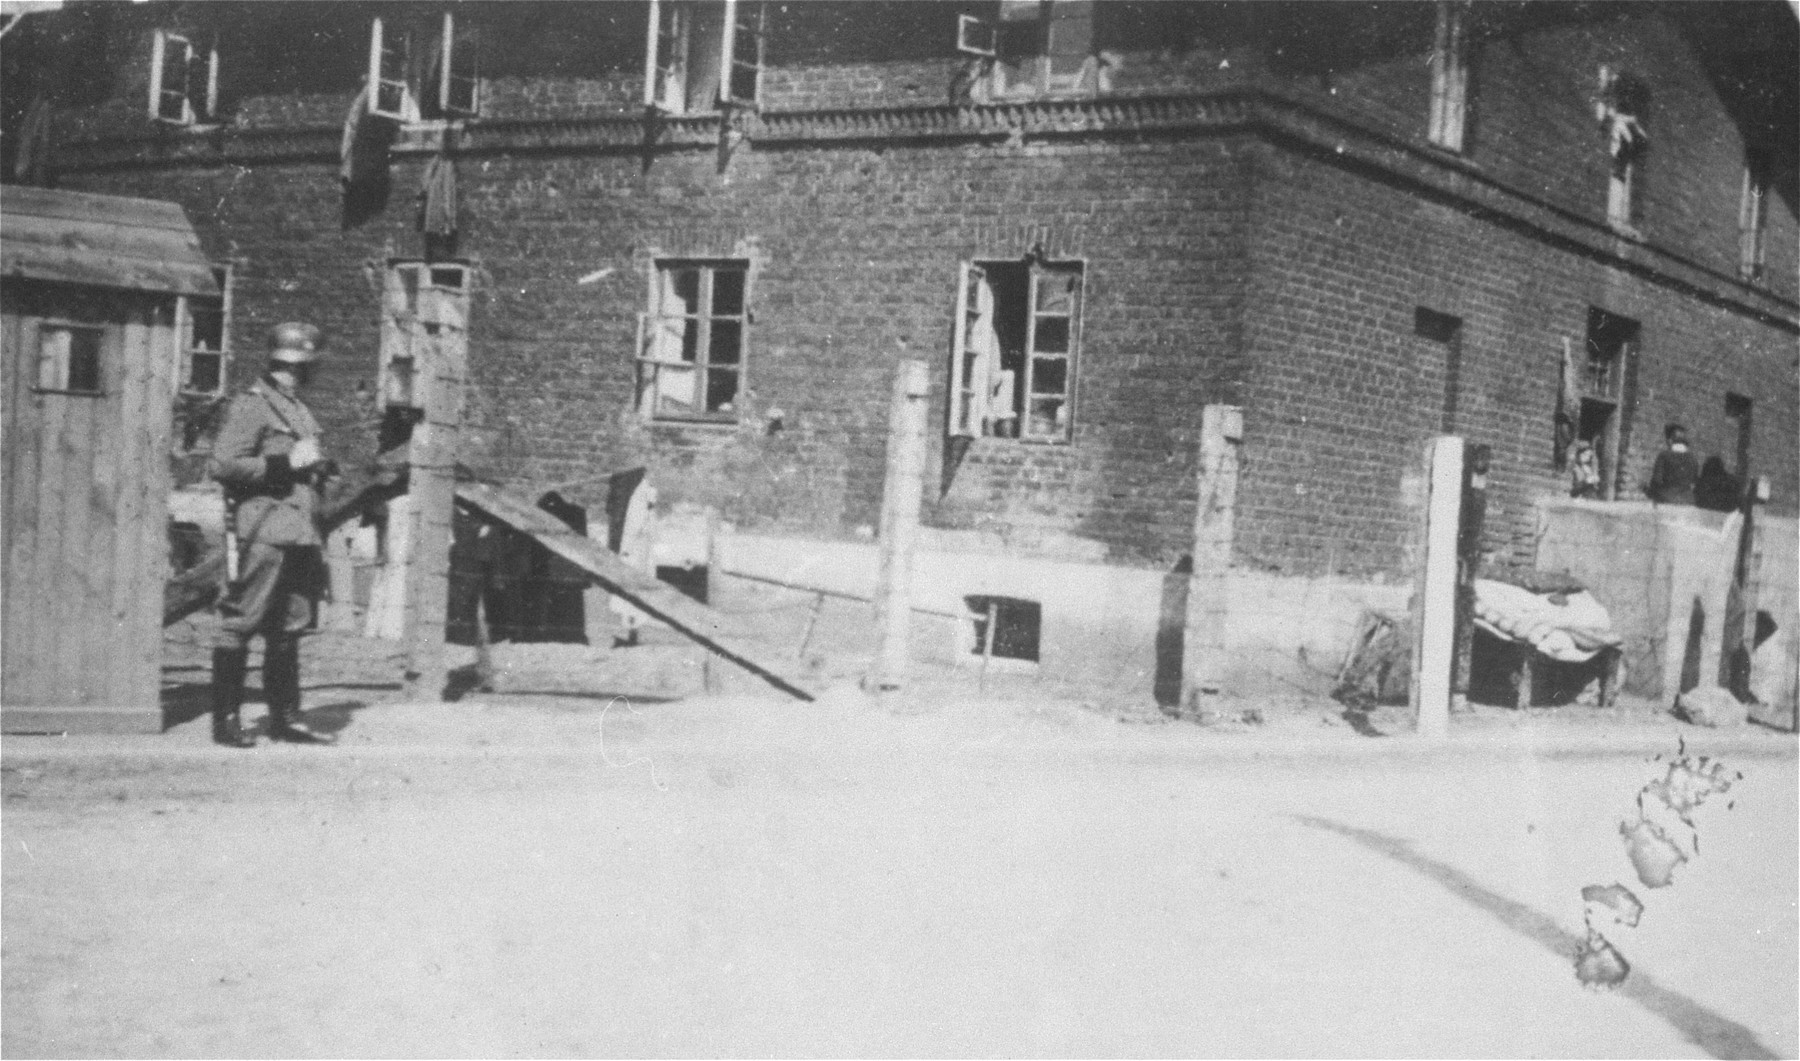 A German soldier stands guard at the entrance to the Kutno ghetto on Mickiewicz street.